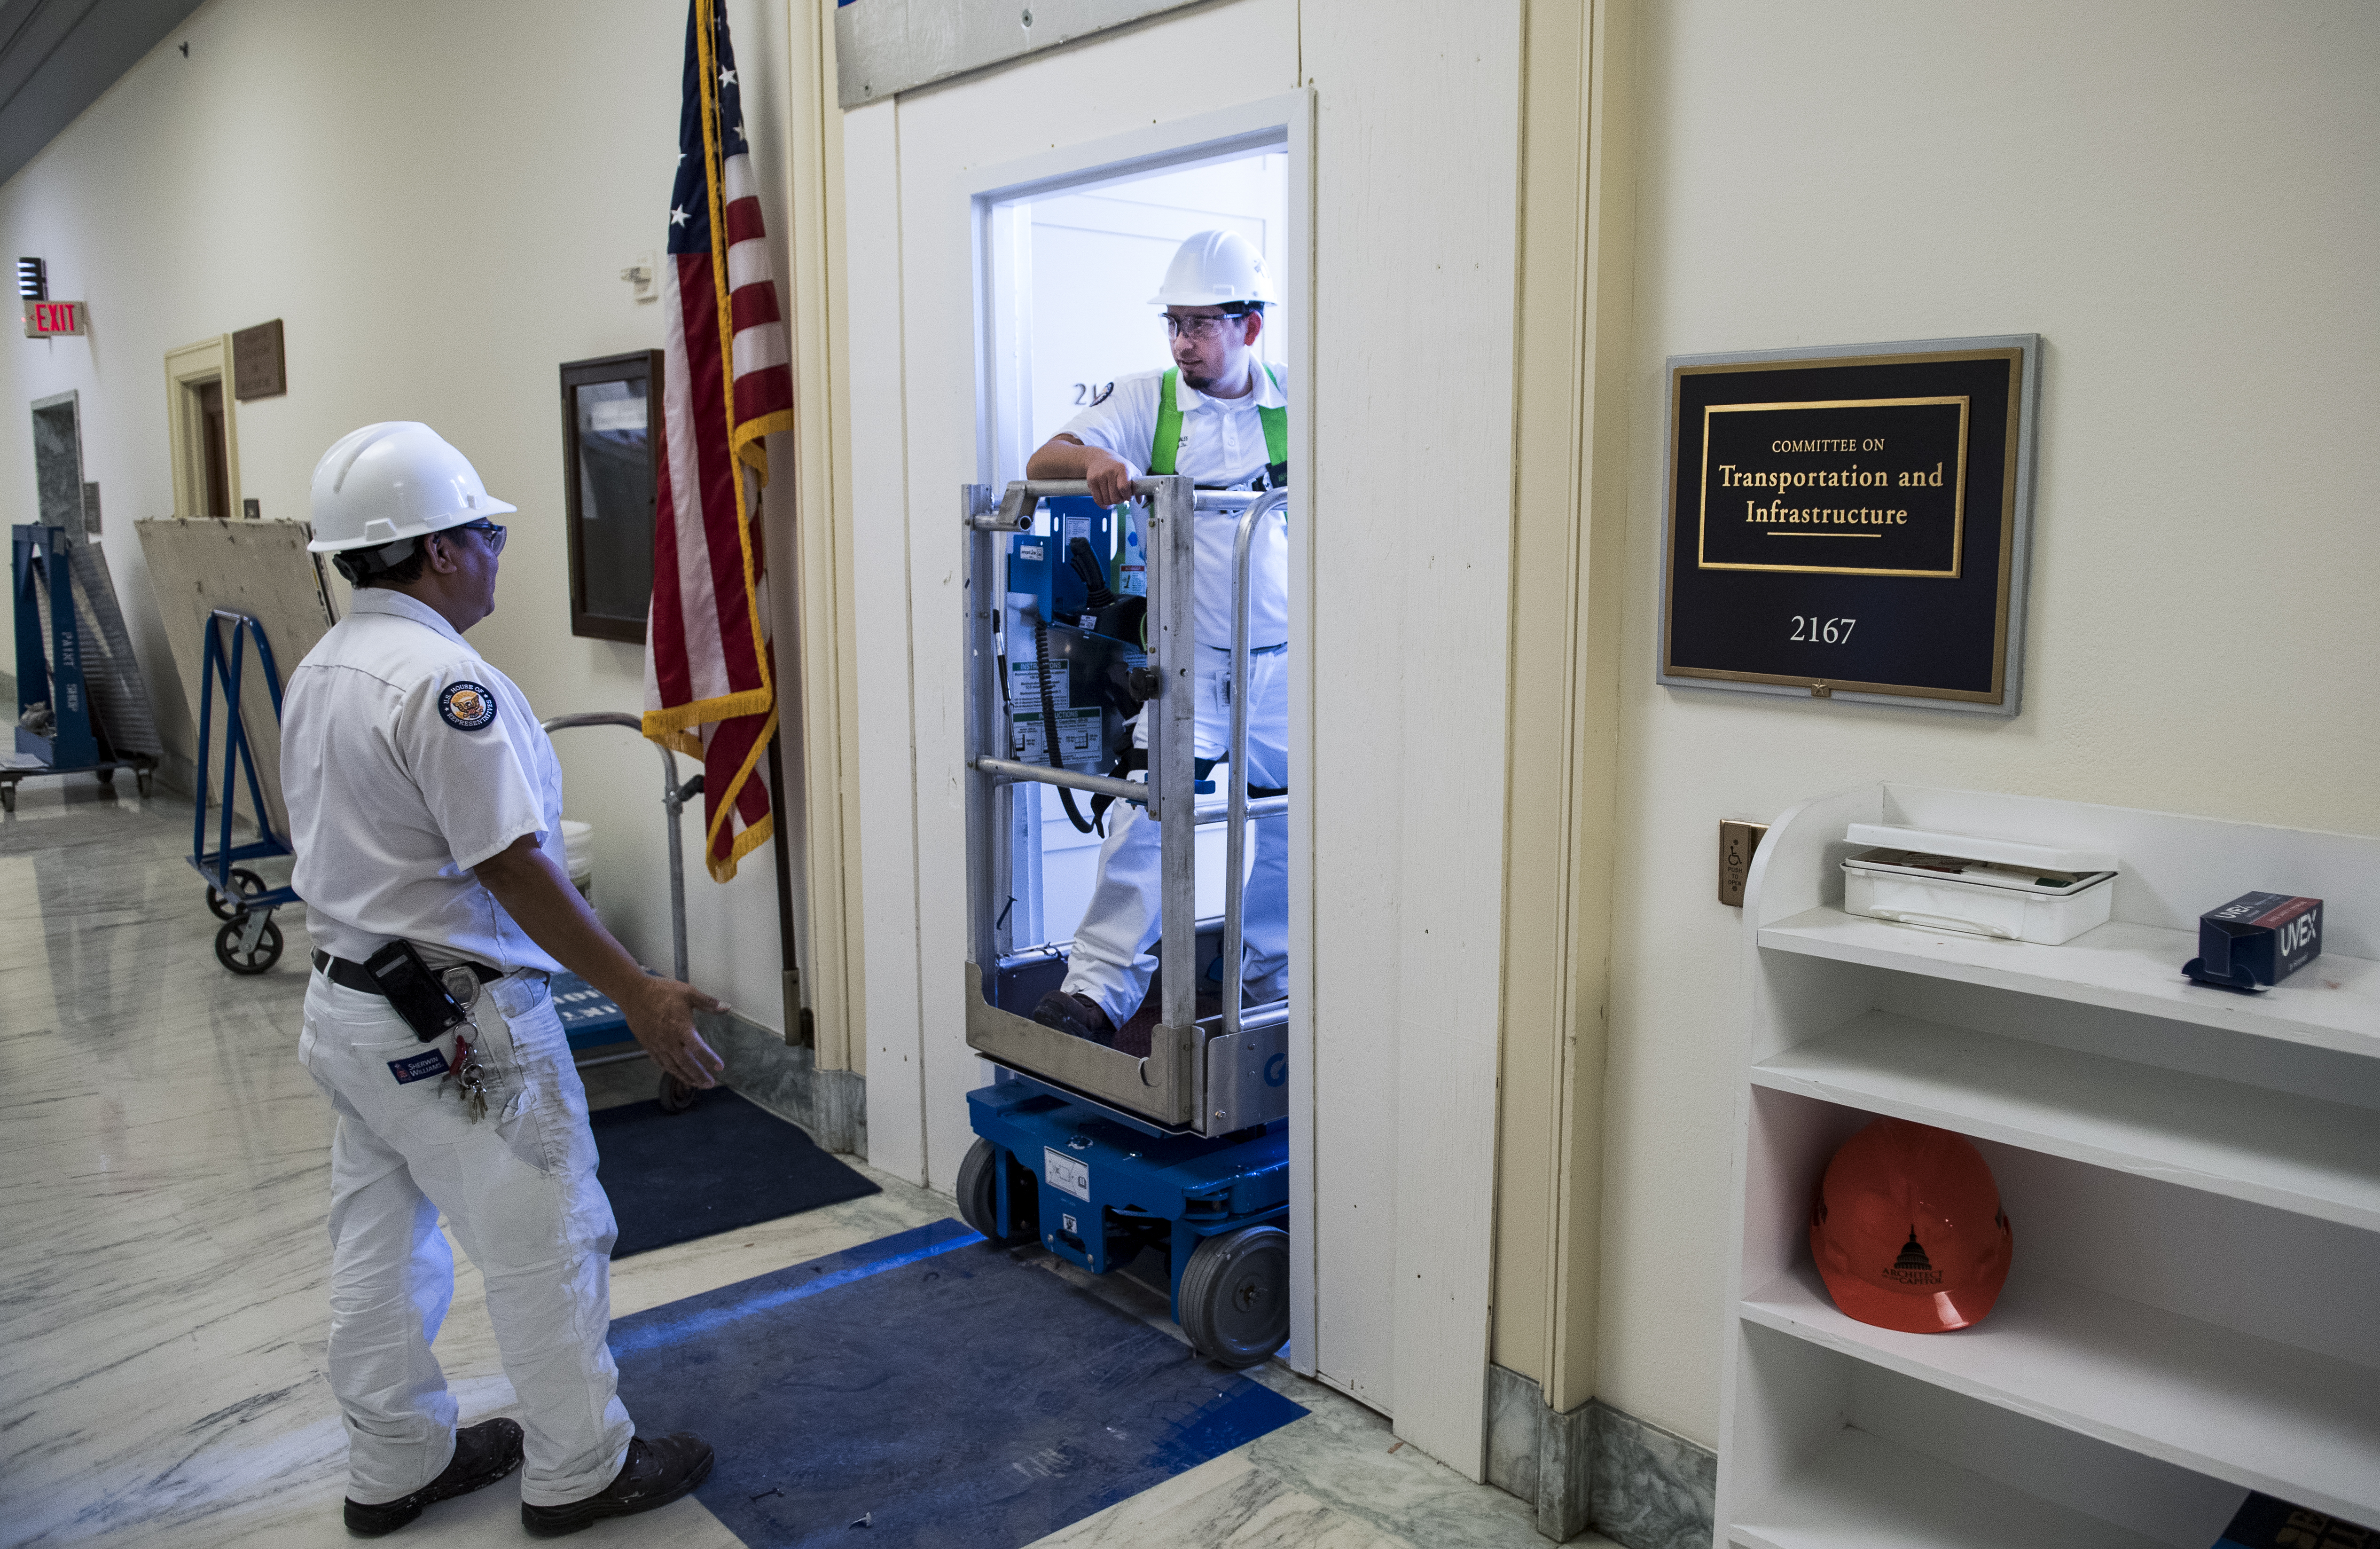 UNITED STATES - FEBRUARY 13: Workers renovate the House Transportation and Infrastructure Committee hearing room in Rayburn Building on Wednesday, February 13, 2019. (Photo By Tom Williams/CQ Roll Call)